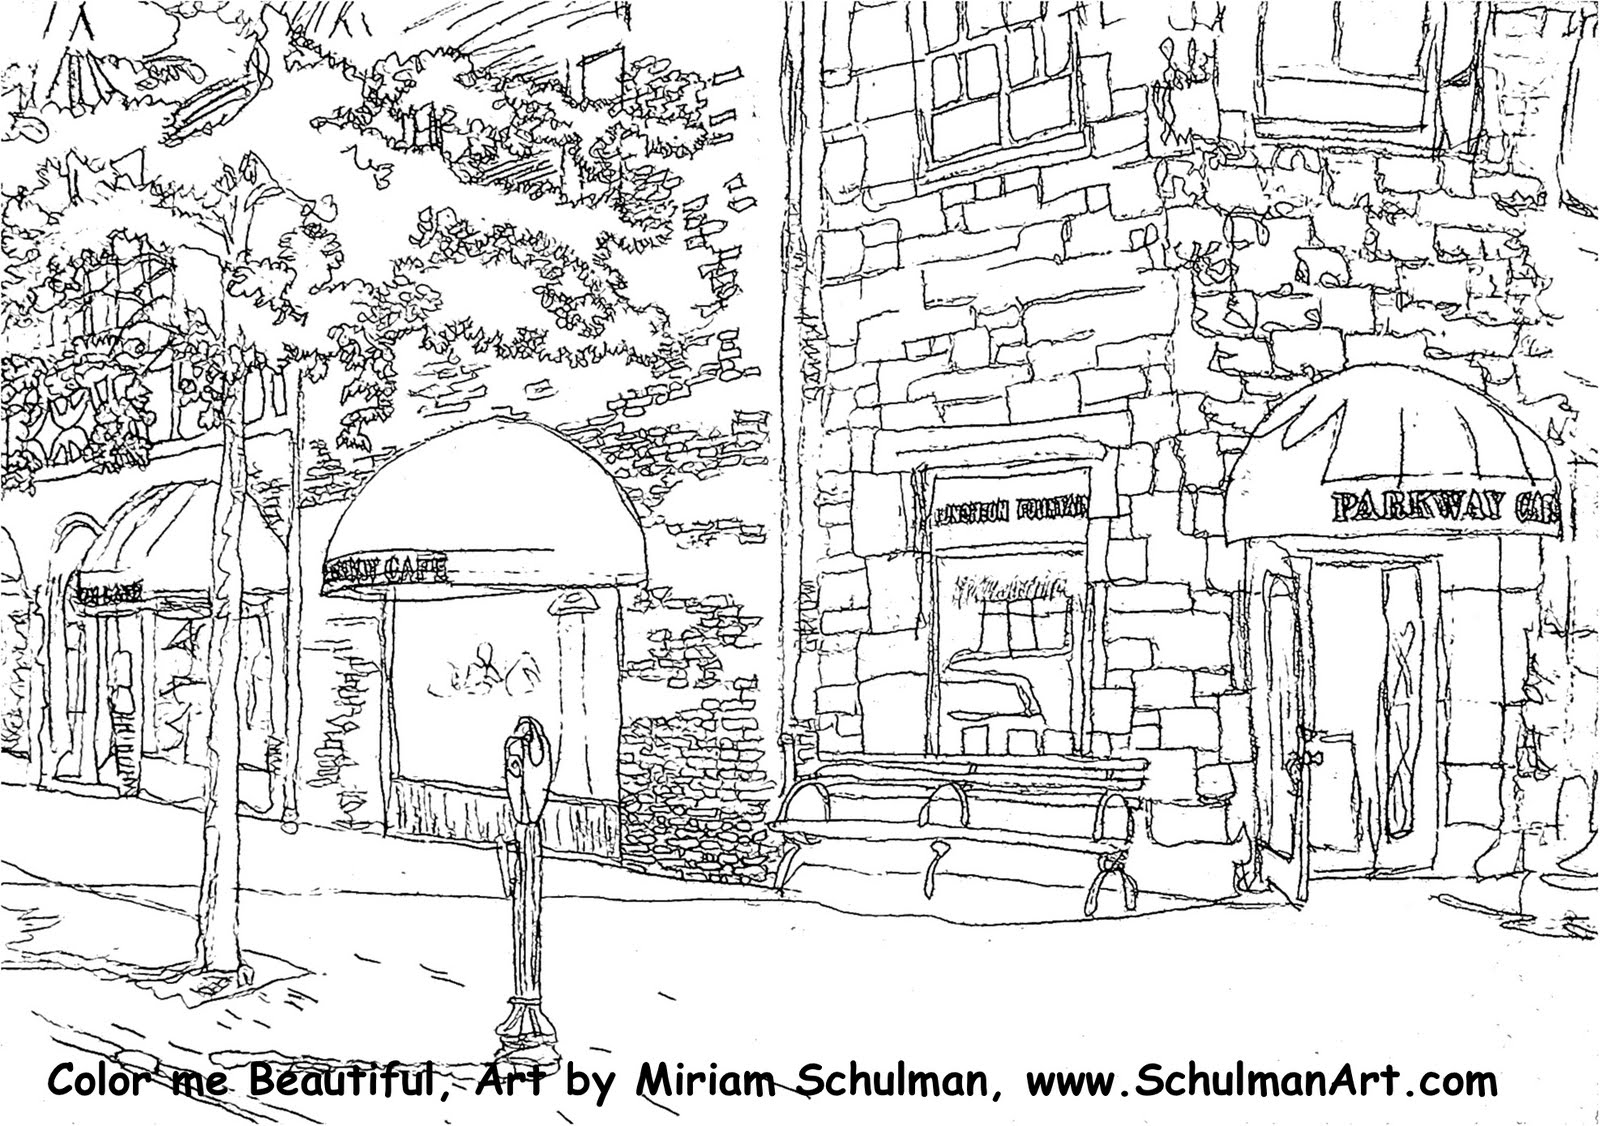 Coloring pages for kids at scarsdale art association show